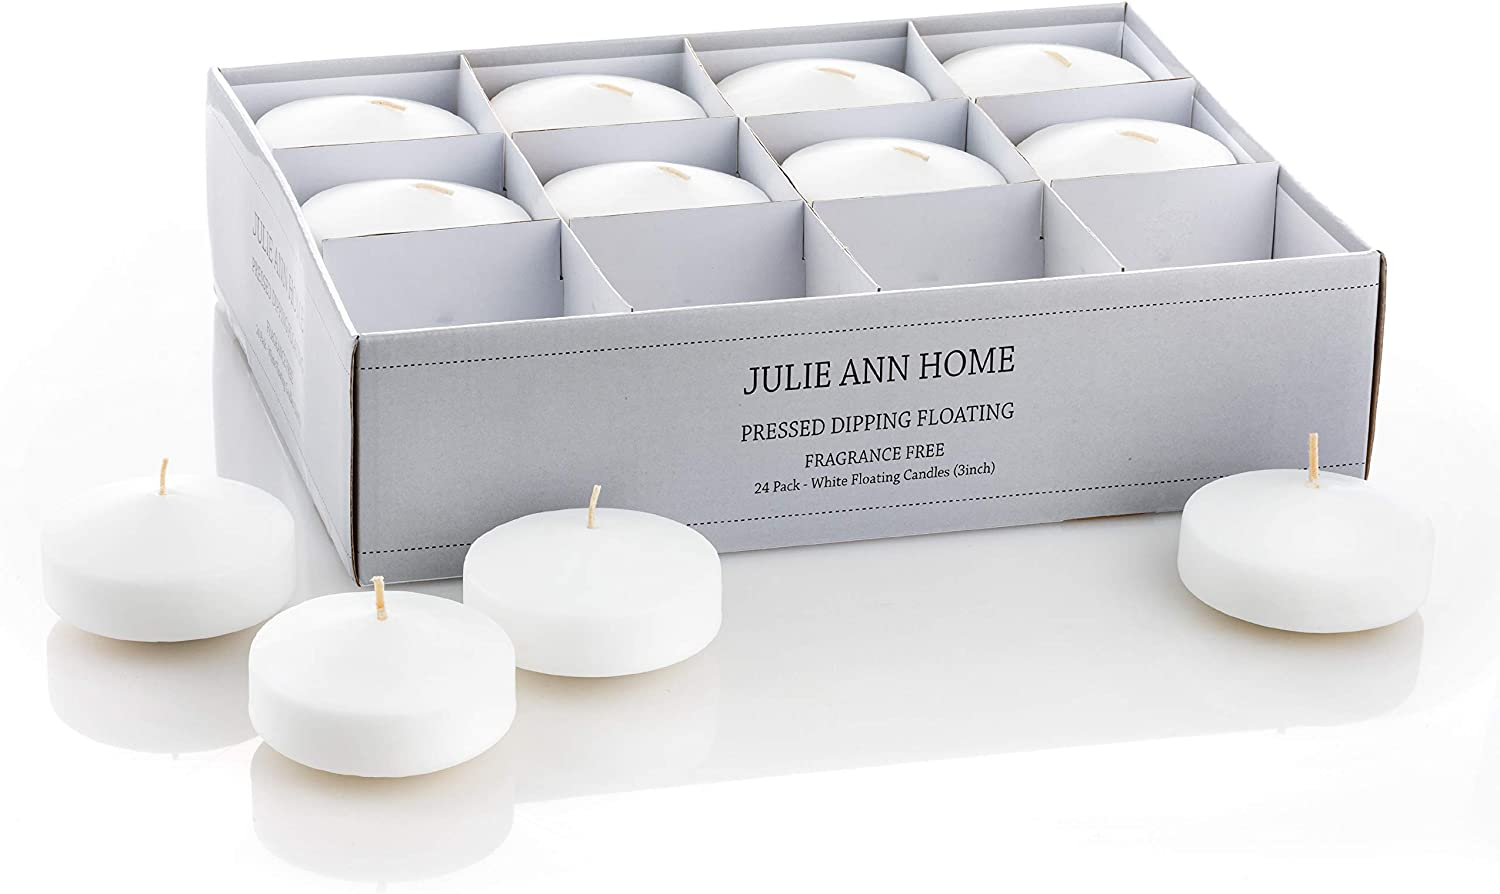 White Floating Candles 3 Inch – Discs Max 82% OFF Candle Now on sale Unscented P